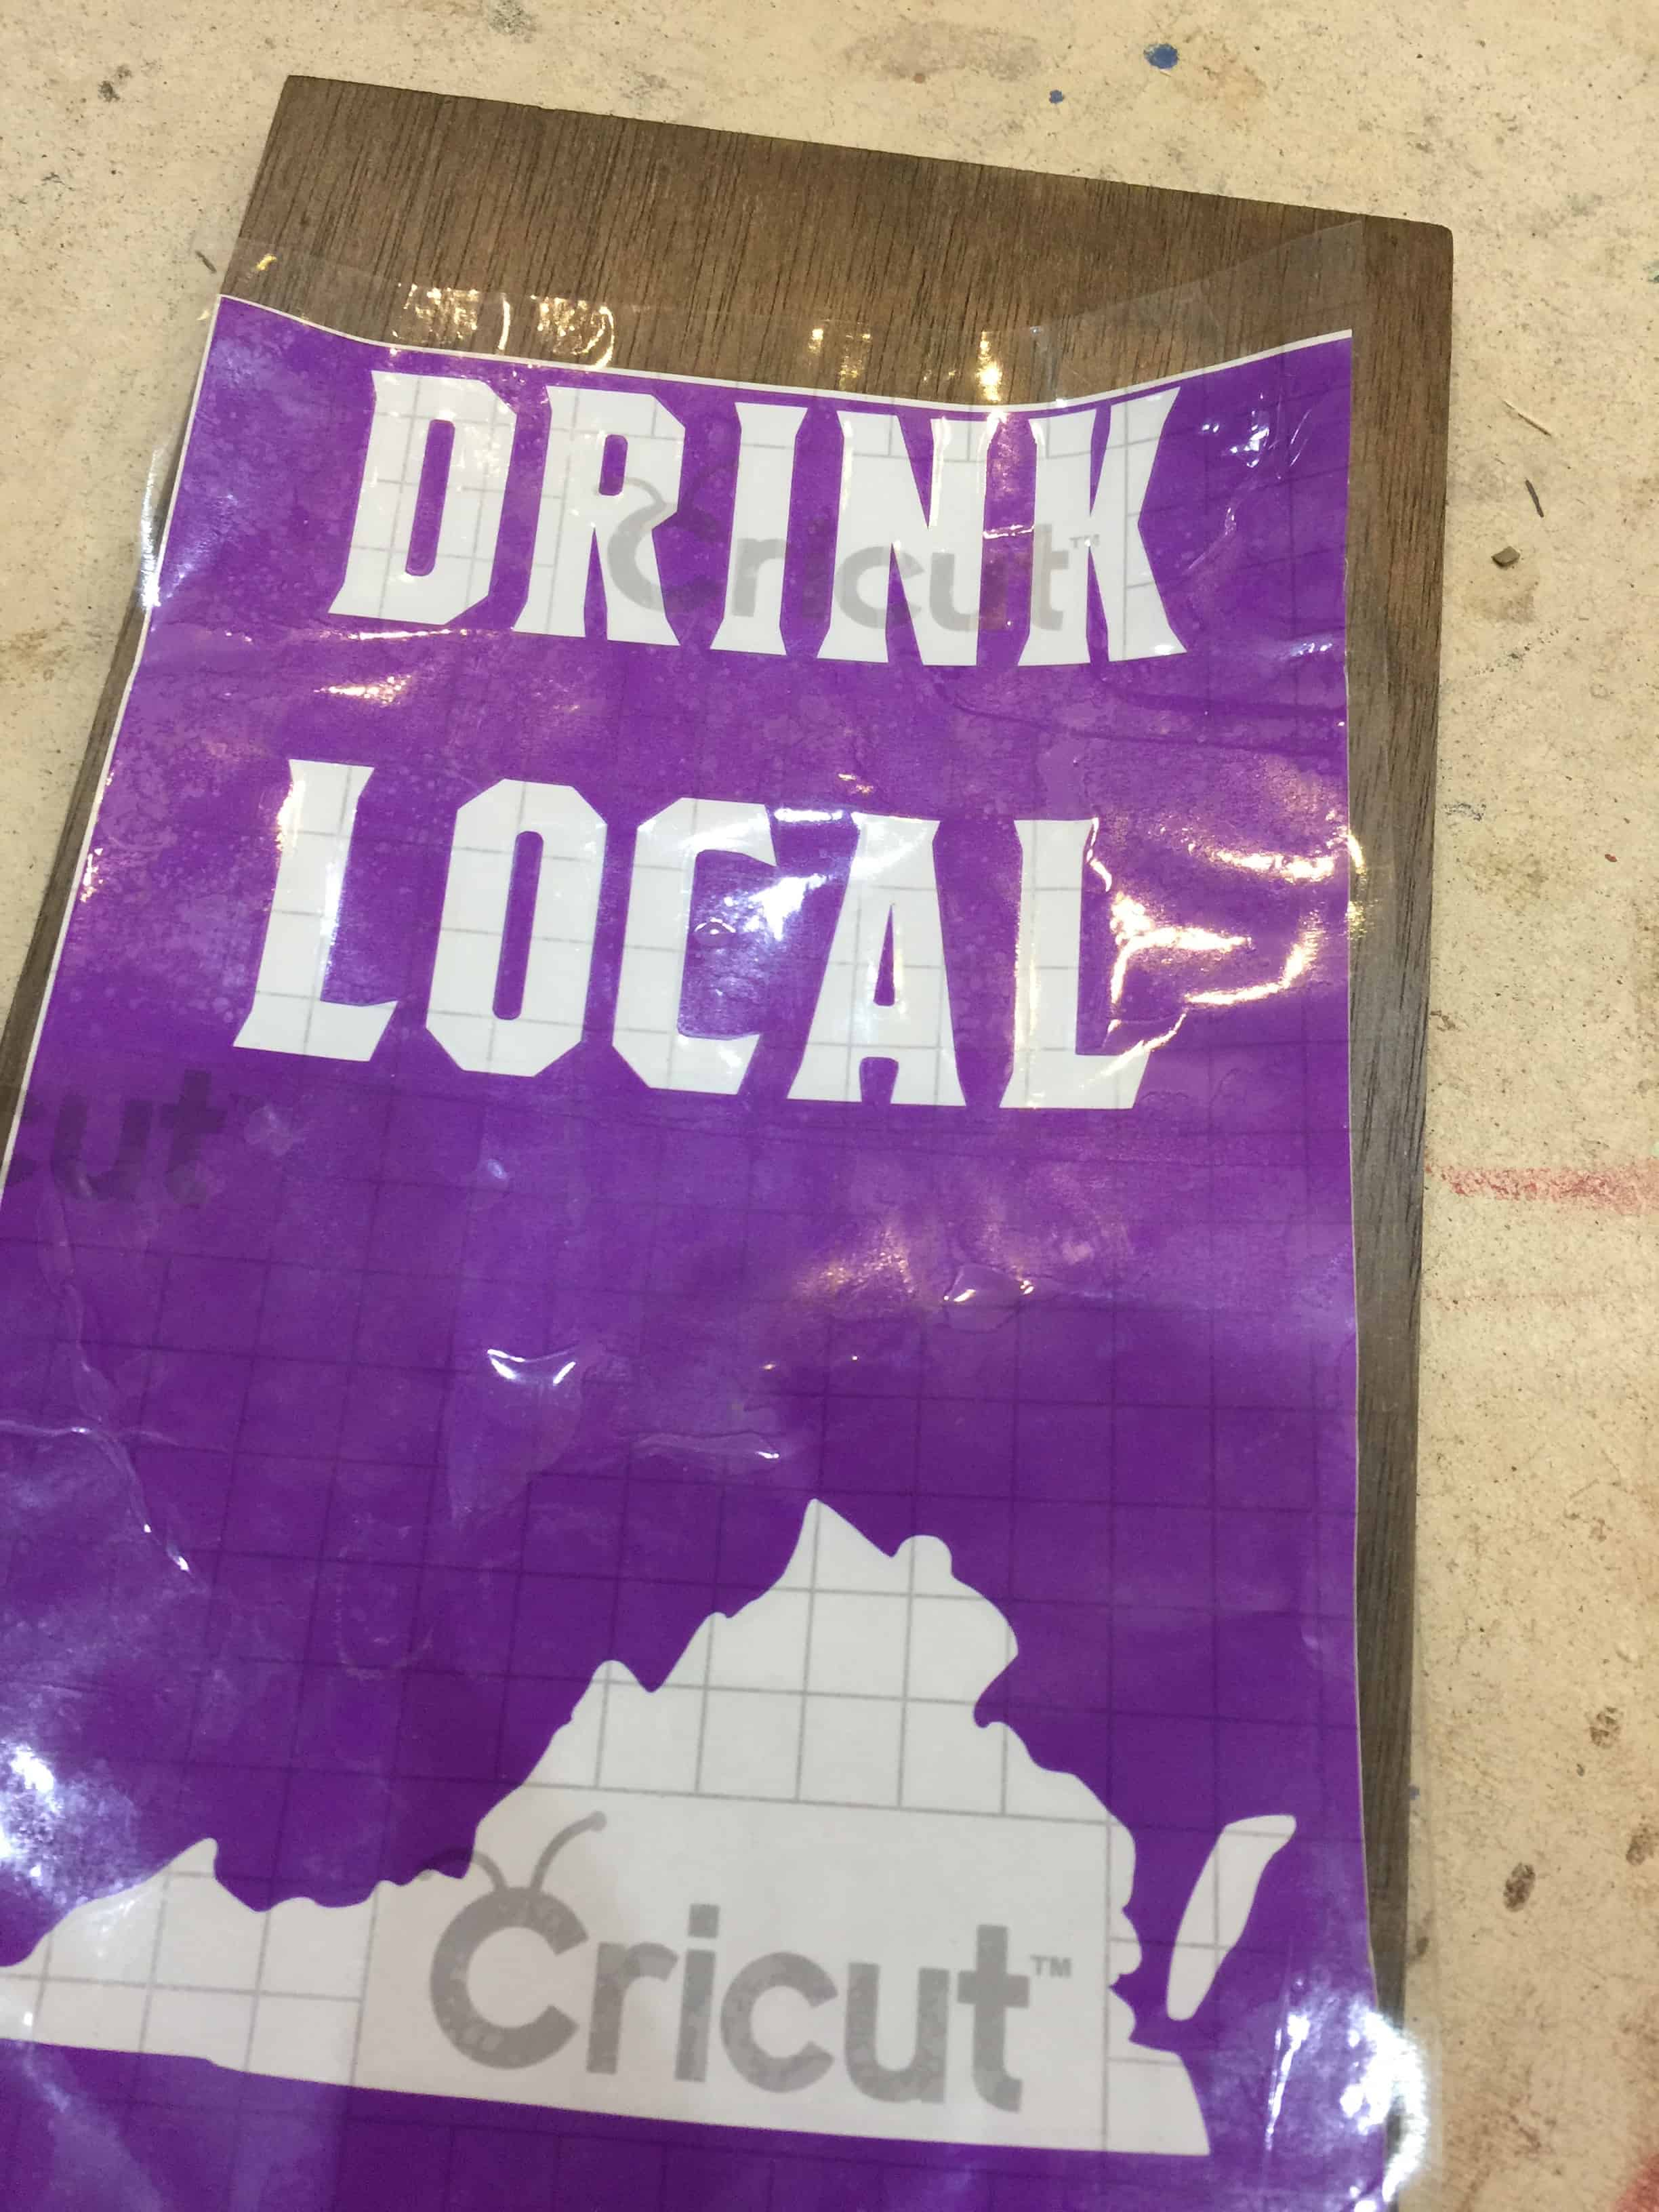 Saved by Scottie drink local vinyl with transfer tape